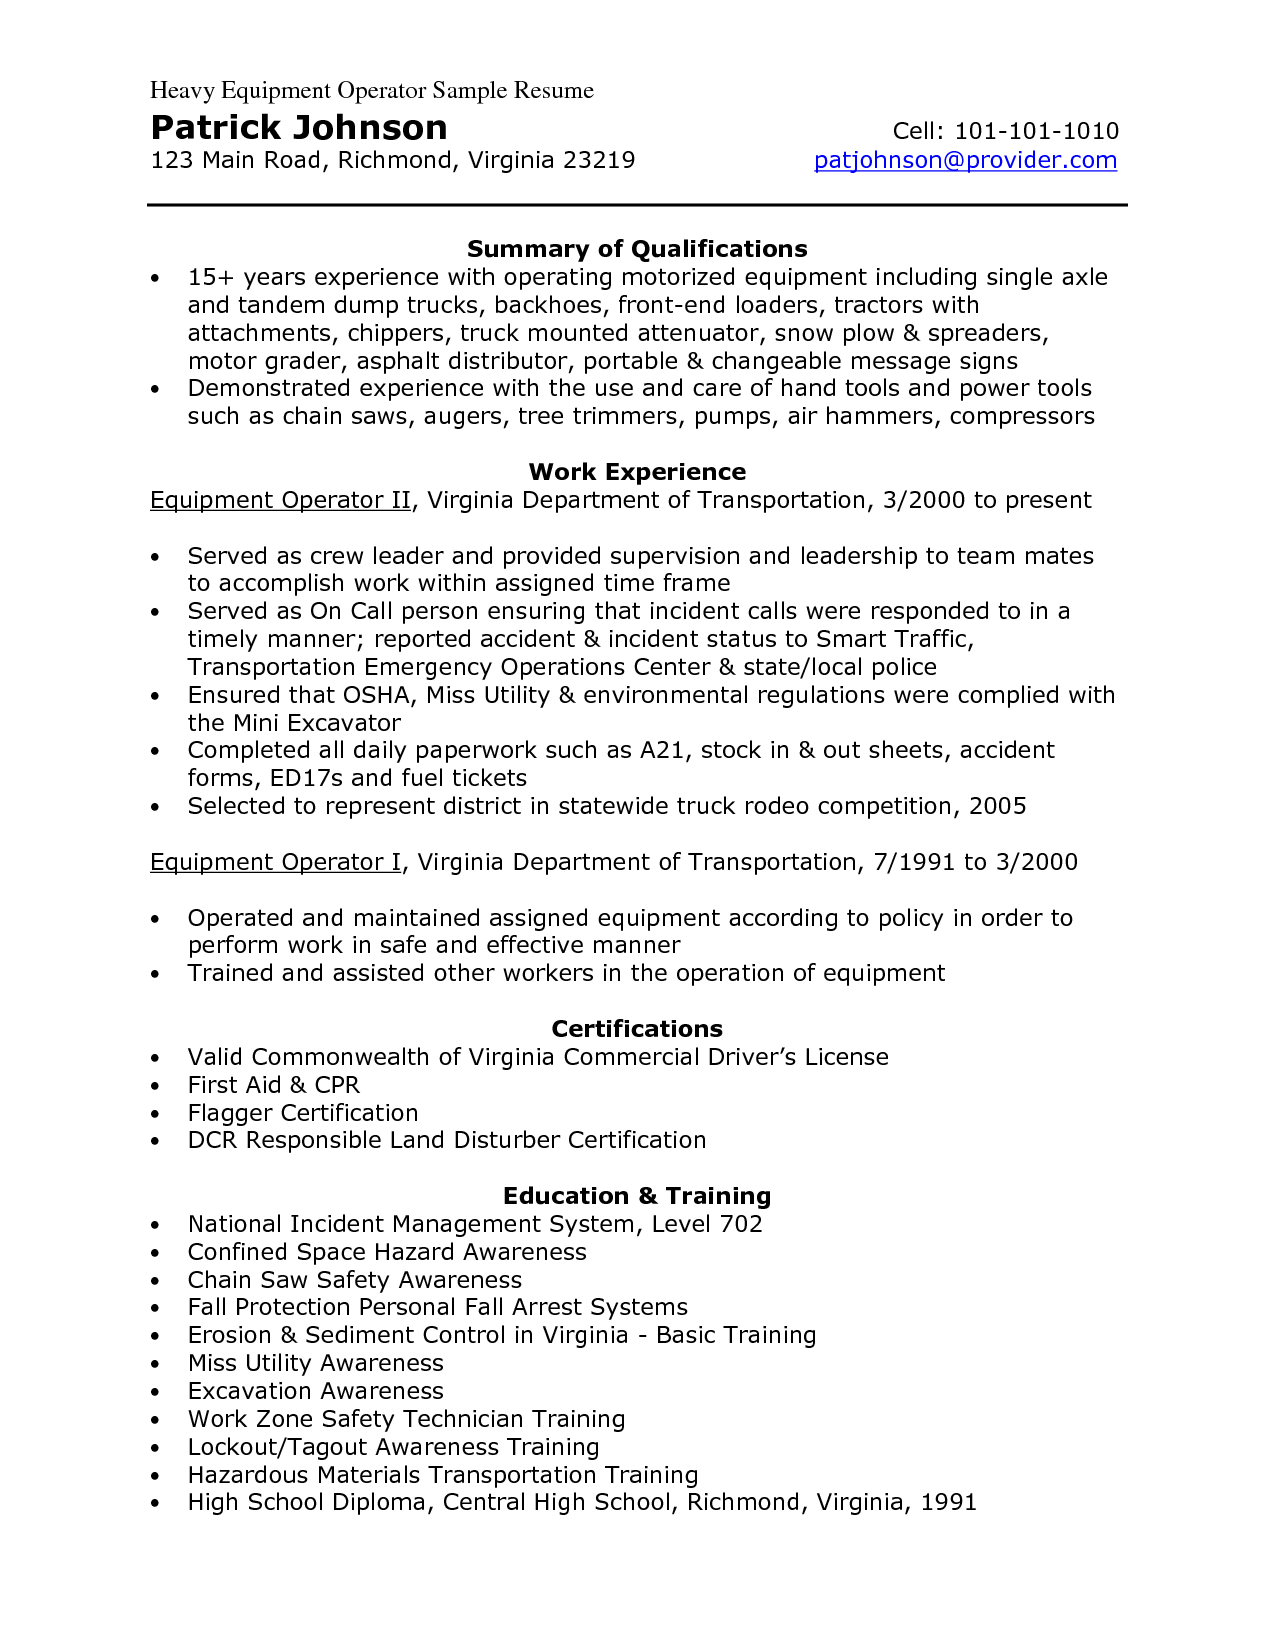 Career Builder Resume Template Resumes For Excavators  Heavy Equipment Operator Sample Resume